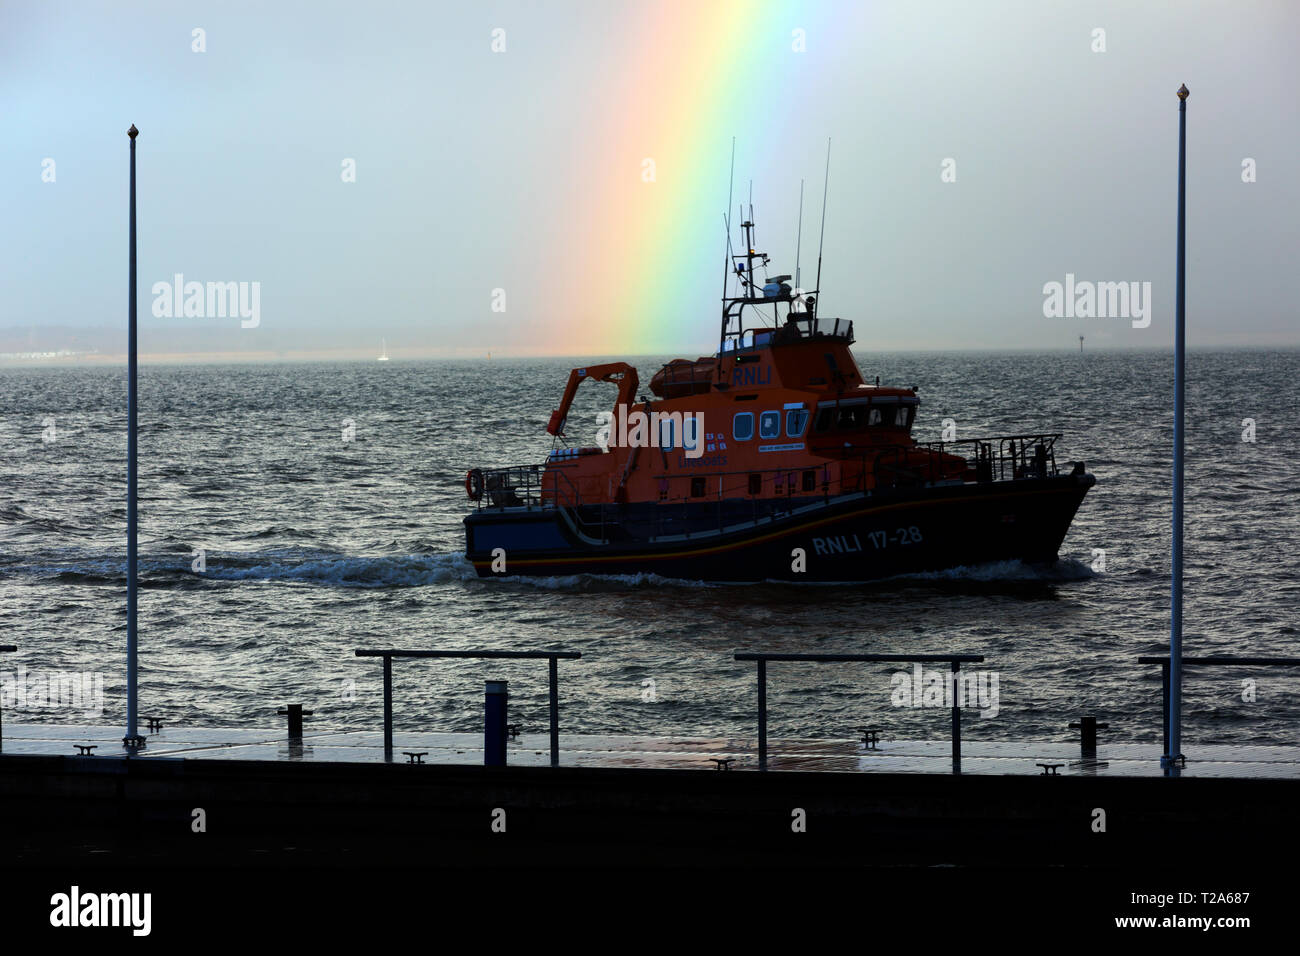 huge,tug,lifeboat,tanker,yacht,large,bright,rainbow,over,sea,Cowes,Isle of Wight,England, - Stock Image